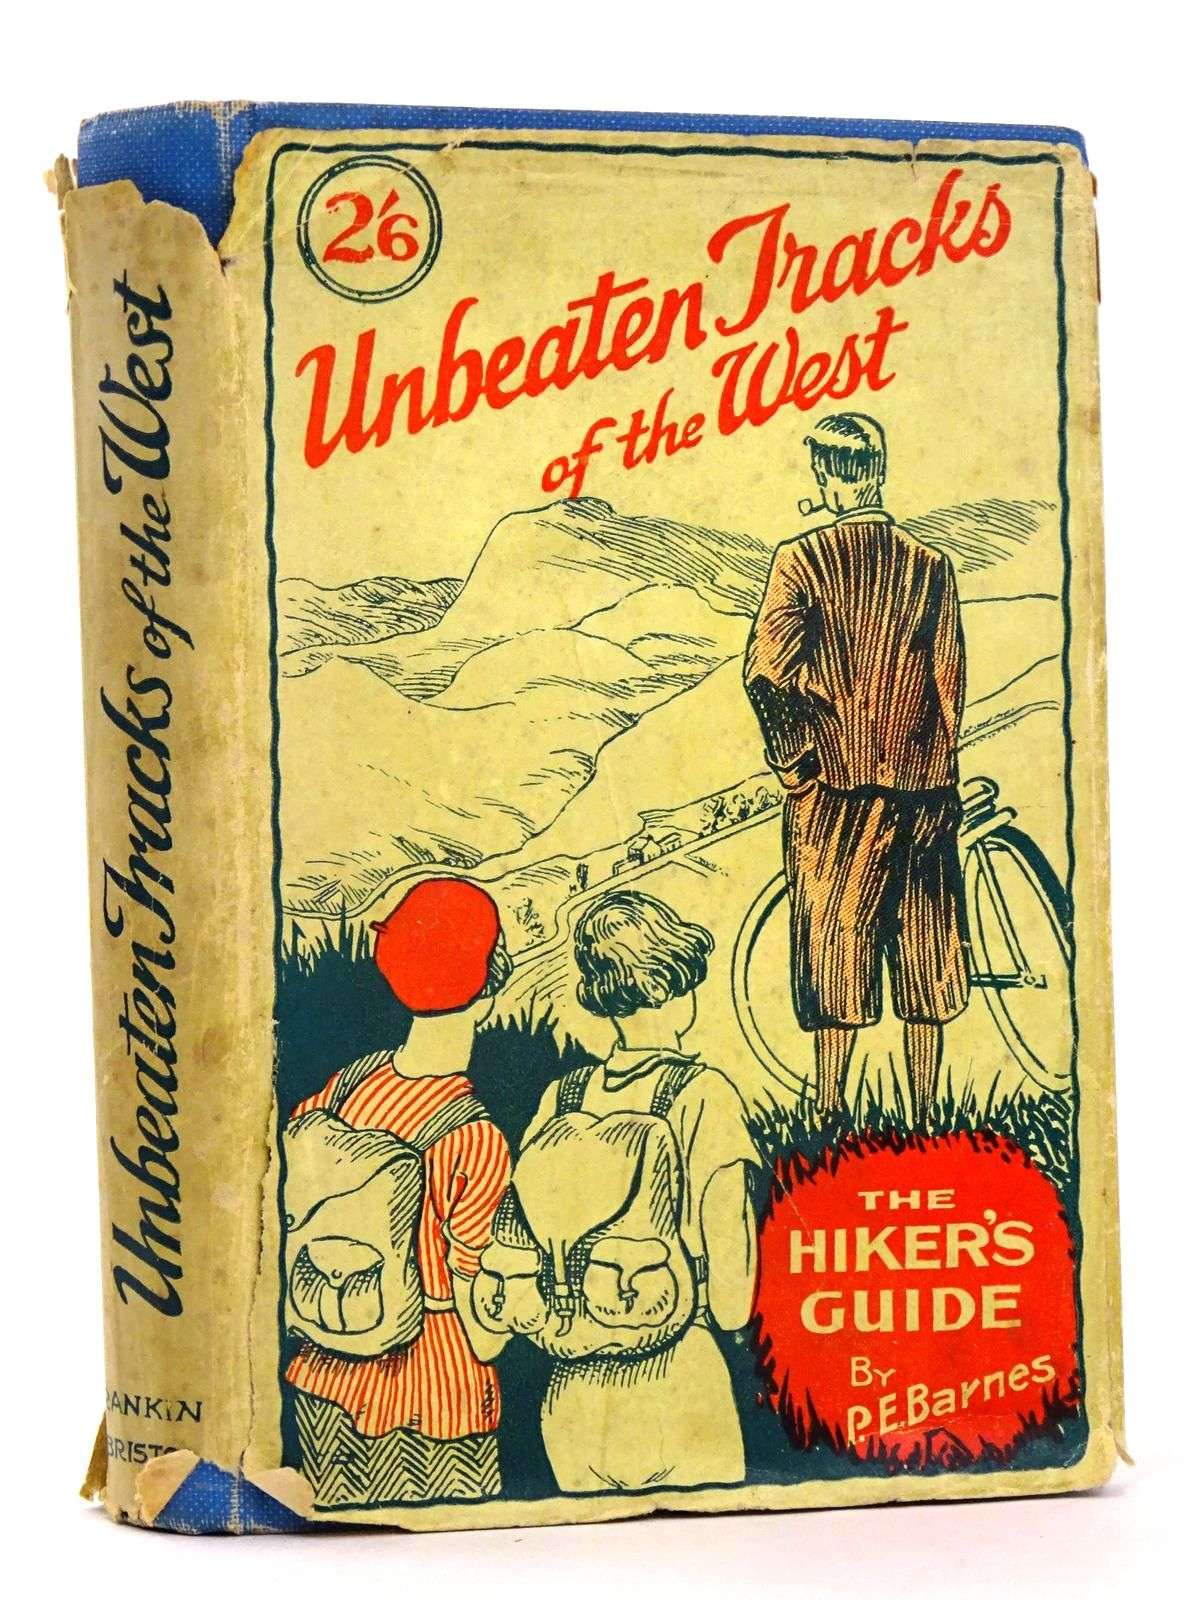 Photo of UNBEATEN TRACKS OF THE WEST THE HIKER'S GUIDE written by Barnes, P.E. published by Western Daily Press (STOCK CODE: 1818550)  for sale by Stella & Rose's Books